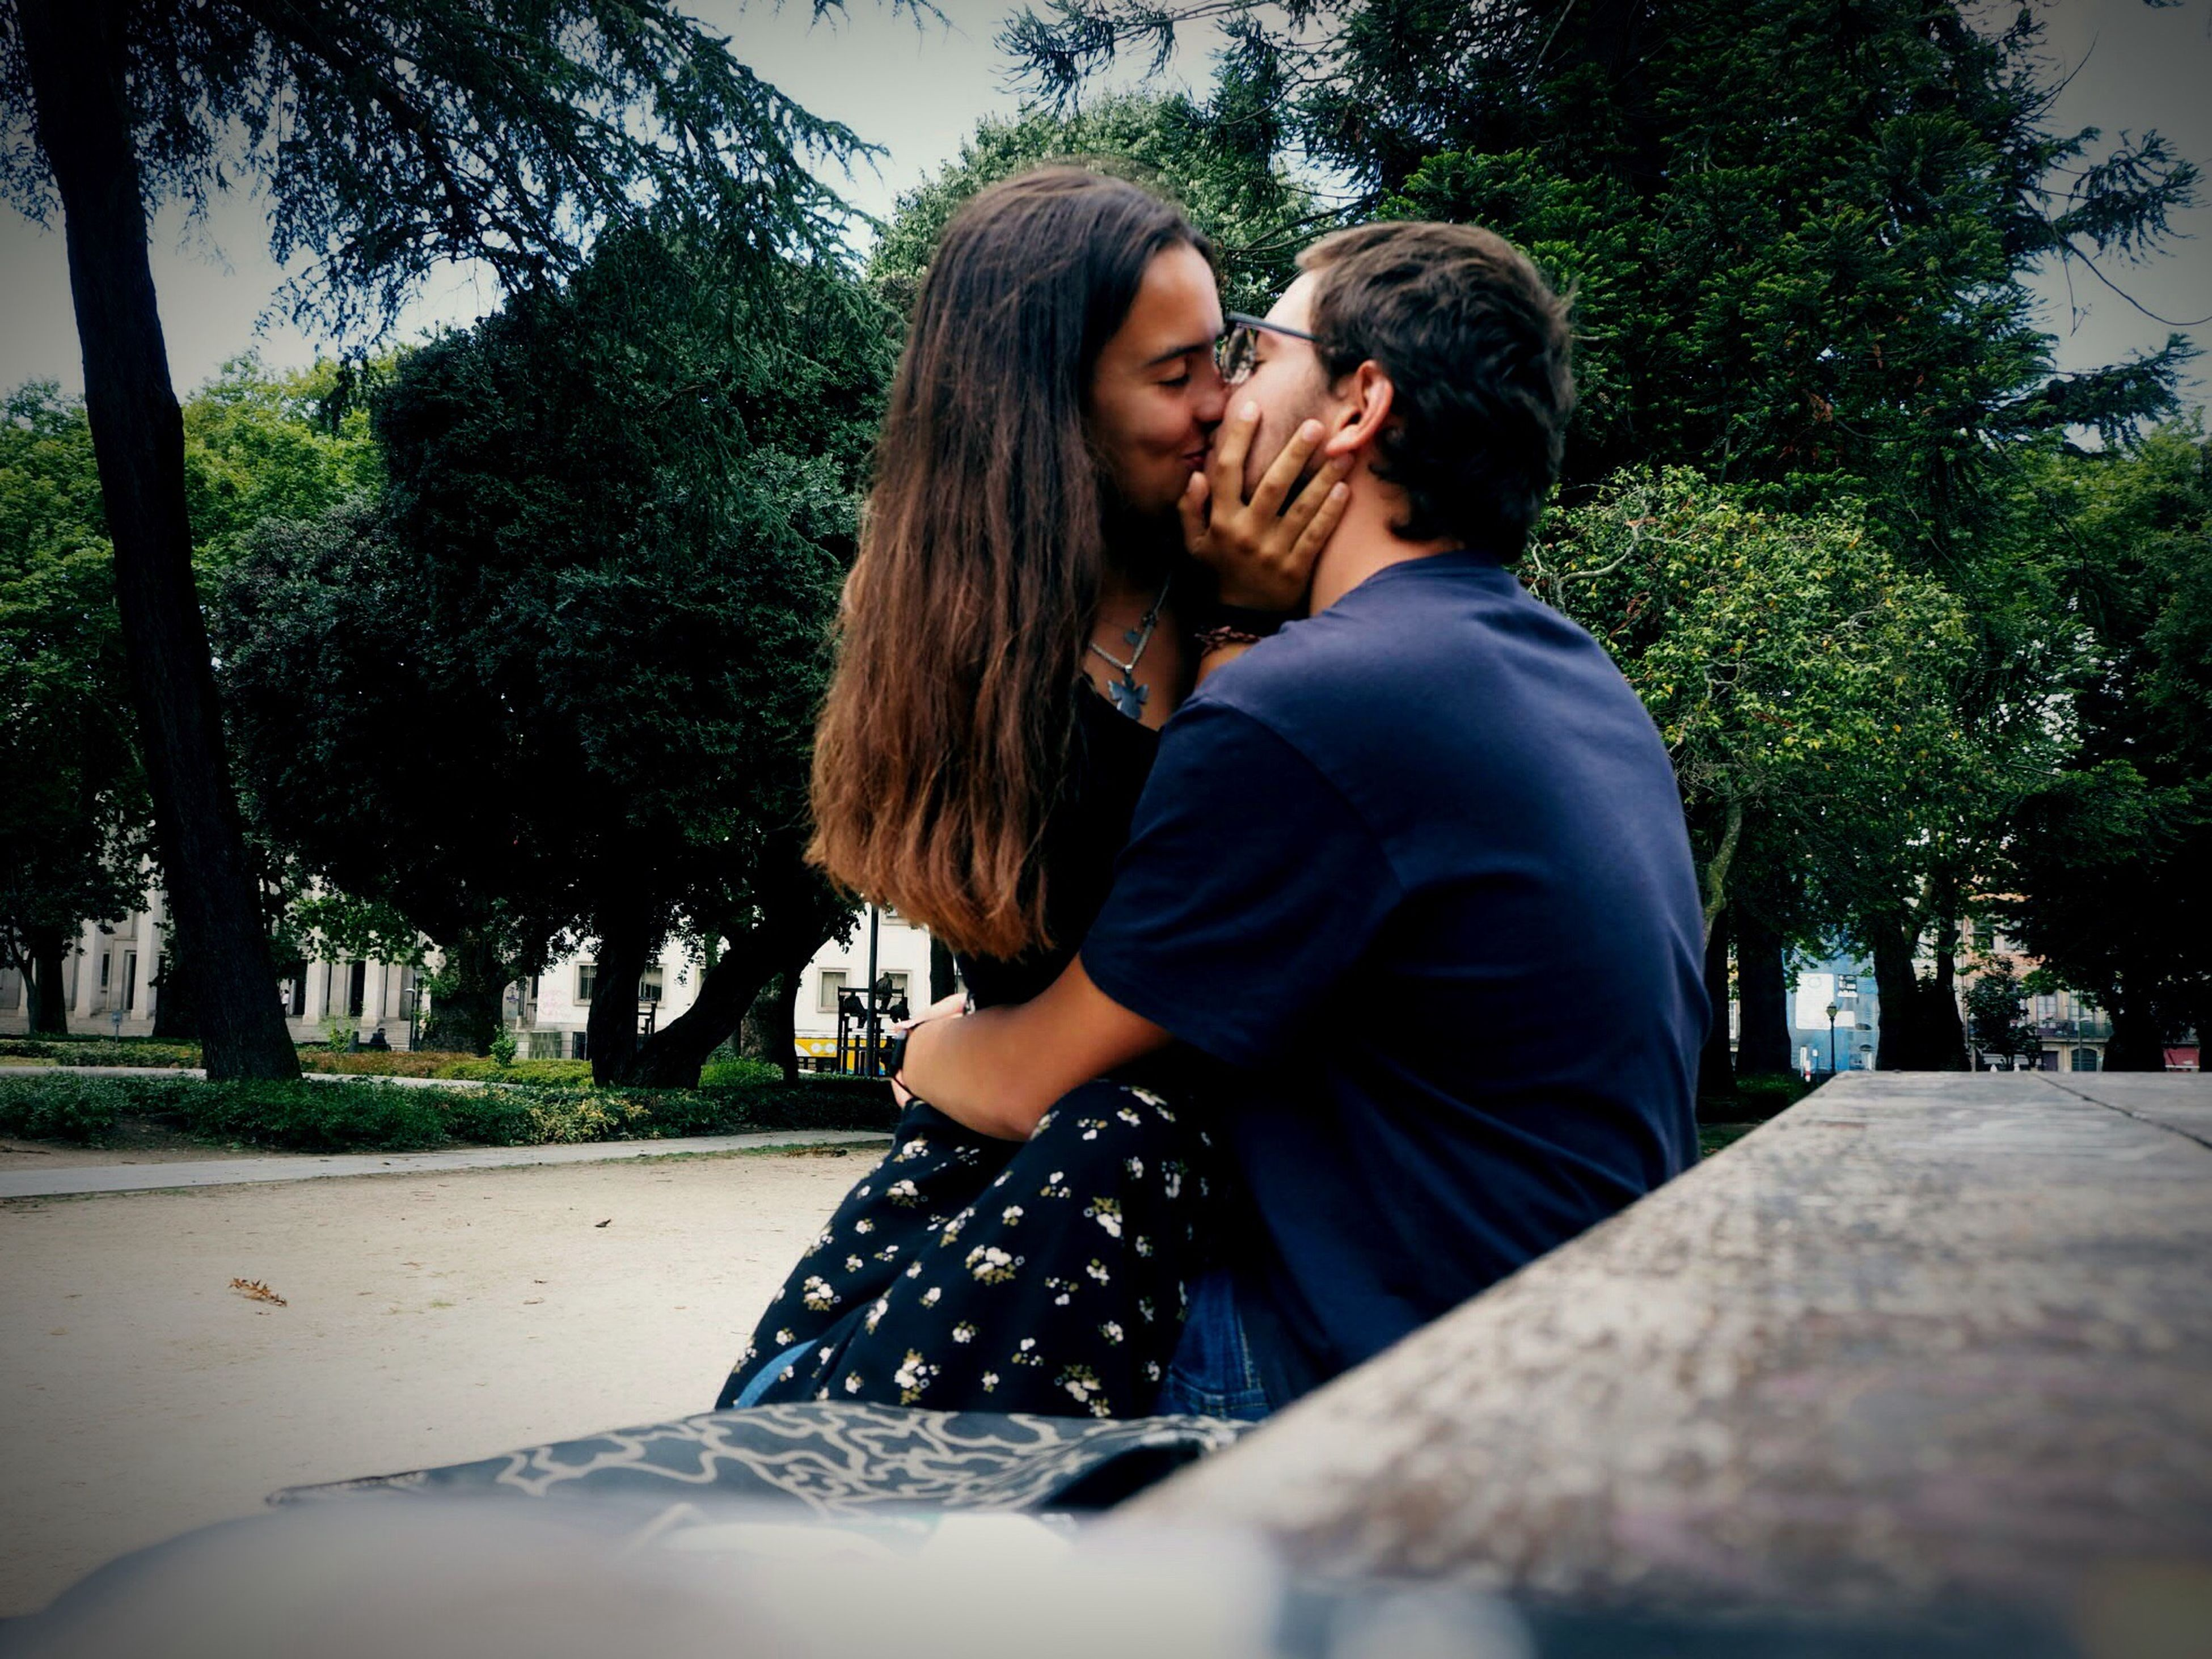 love, two people, togetherness, real people, tree, car, bonding, road, embracing, casual clothing, young women, outdoors, leisure activity, lifestyles, happiness, romantic, young adult, smiling, day, nature